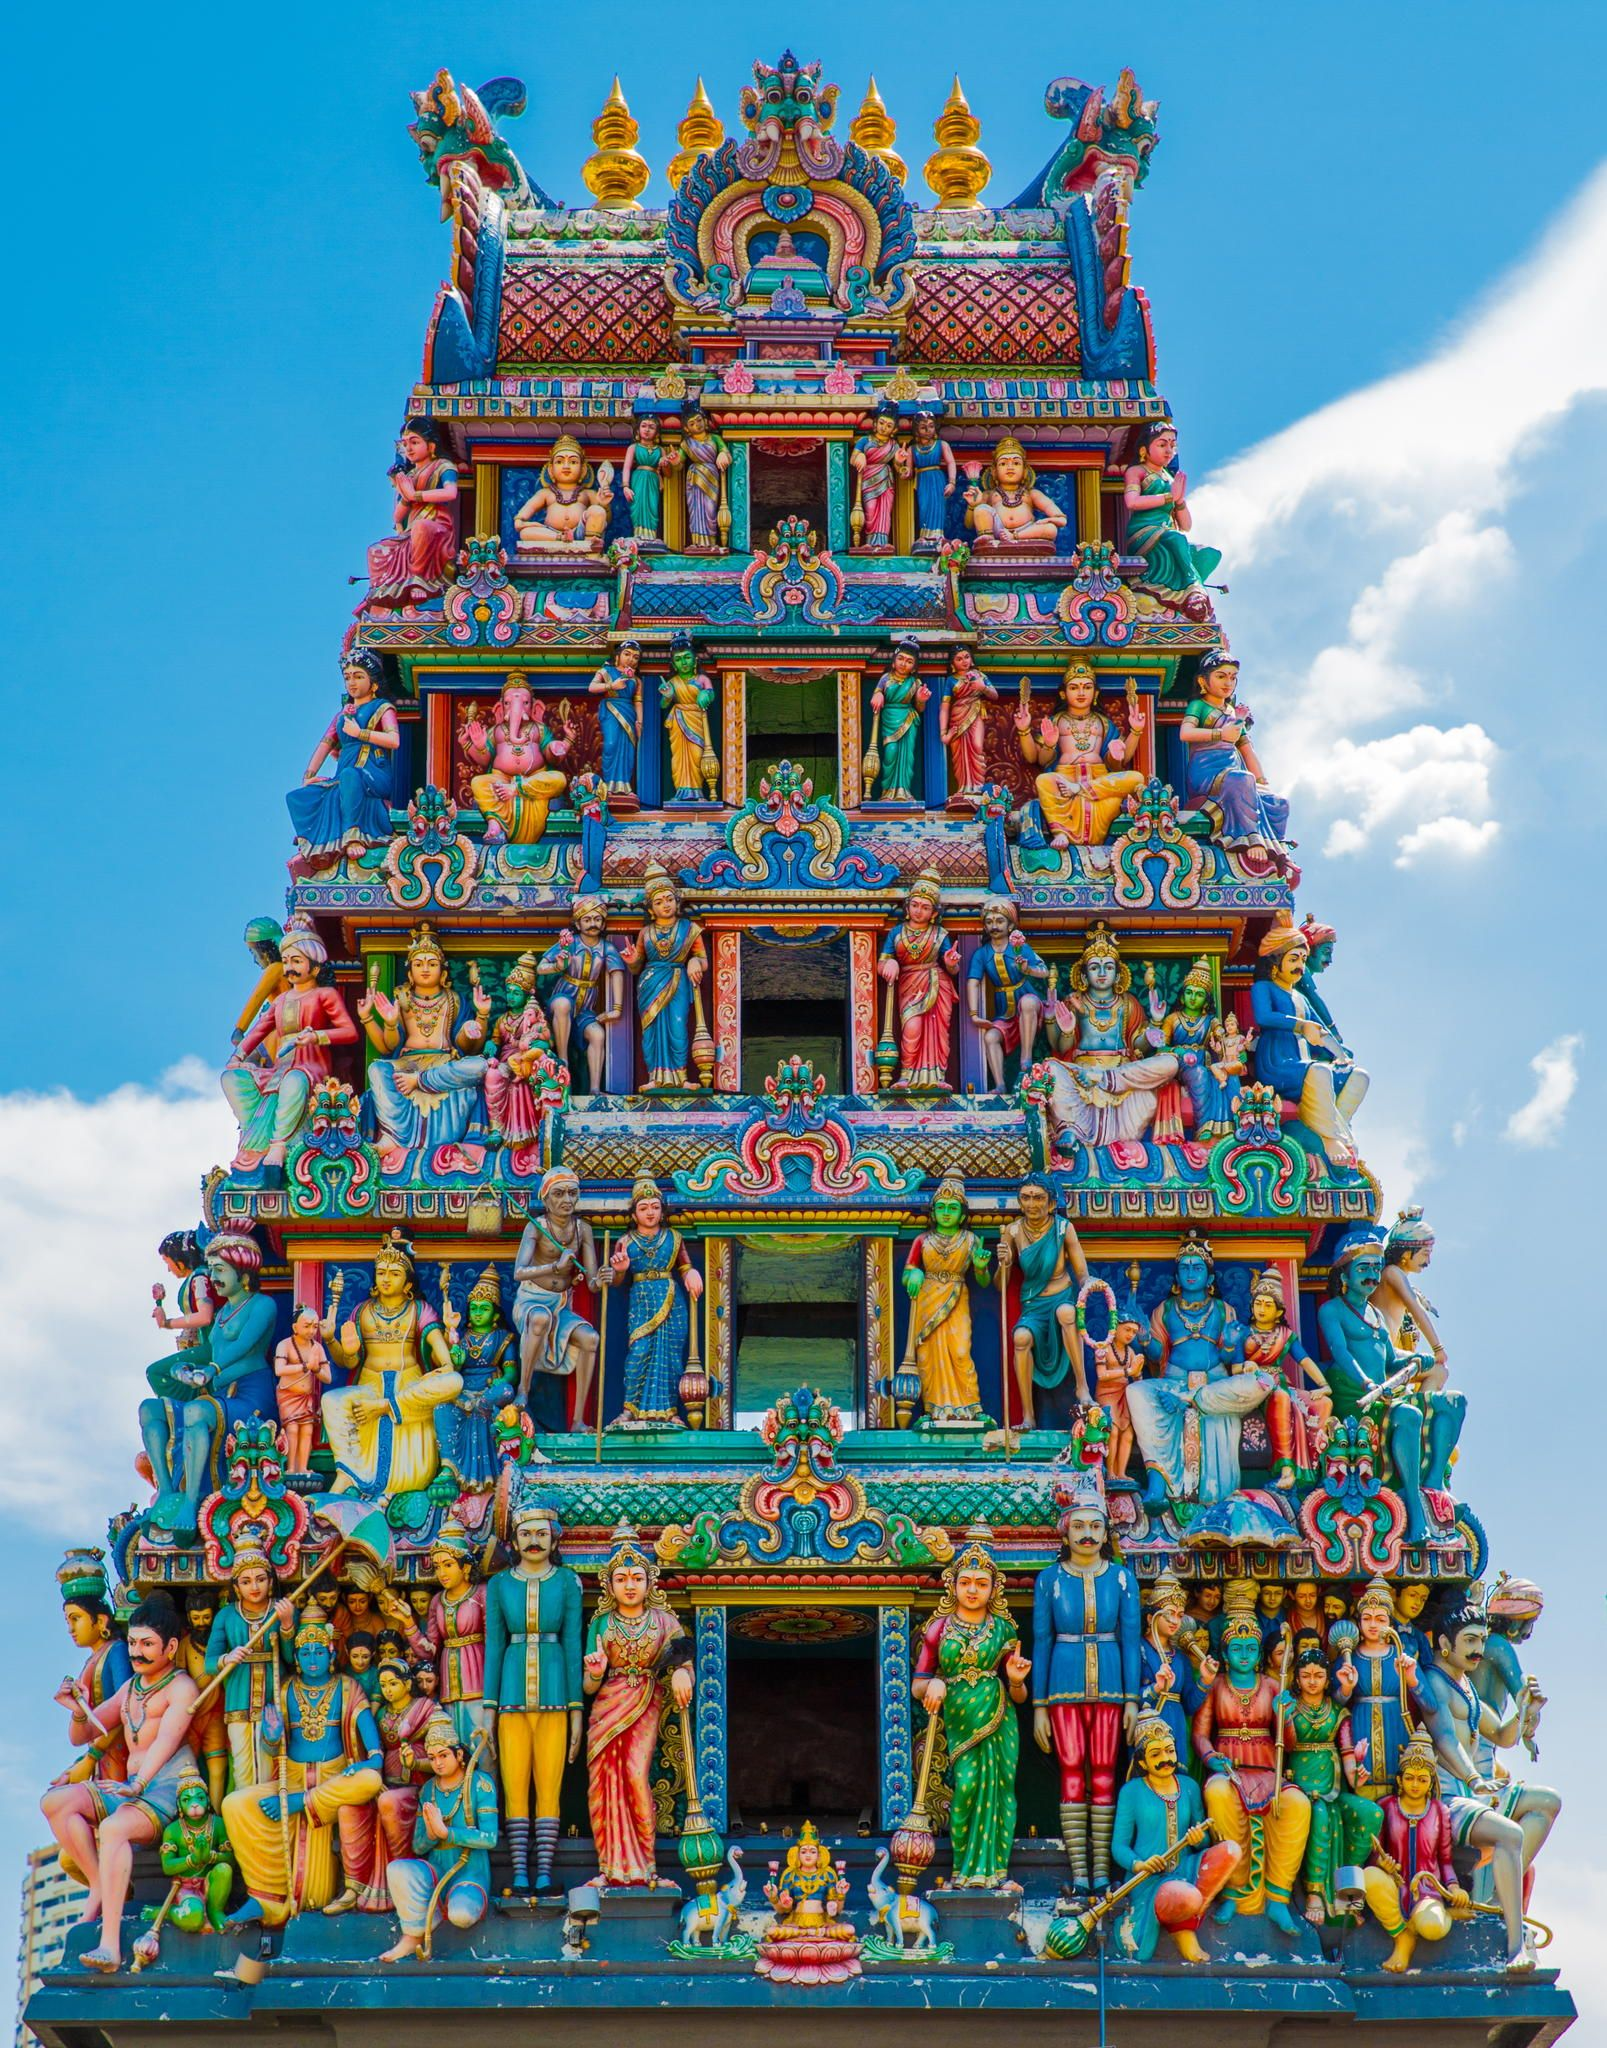 The oldest Hindu temple in Singapore